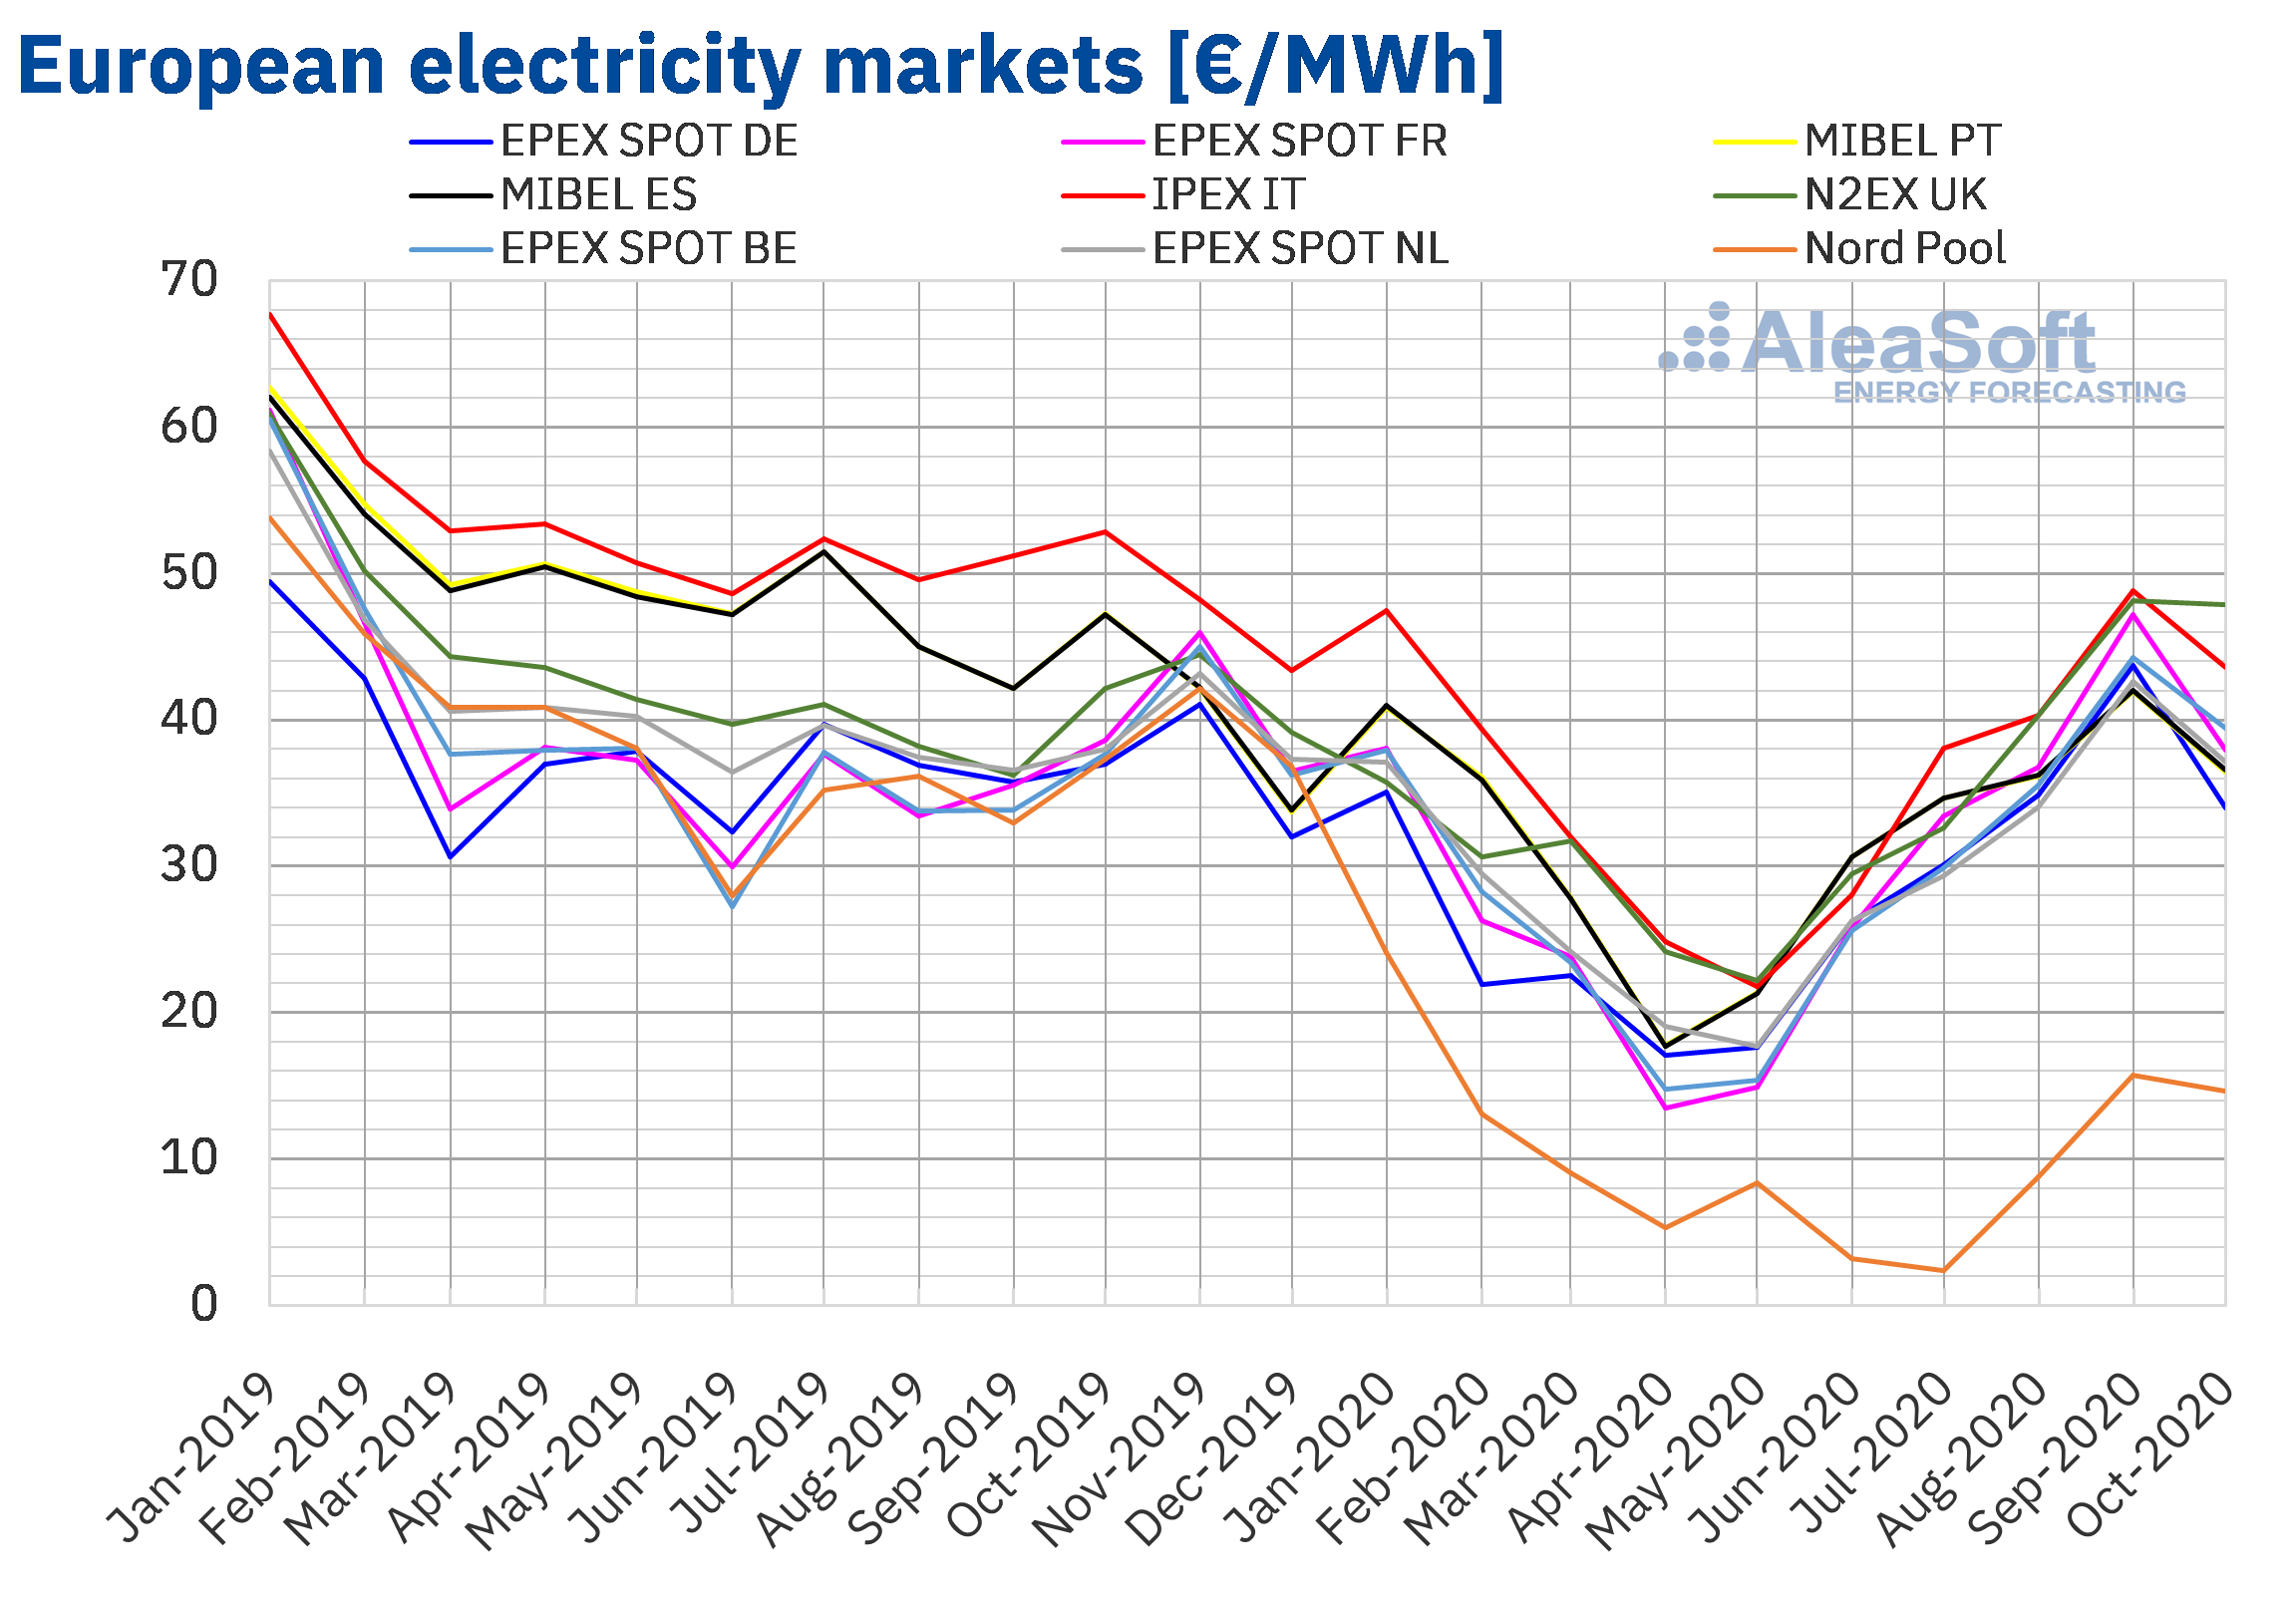 AleaSoft - Monthly european electricity market prices